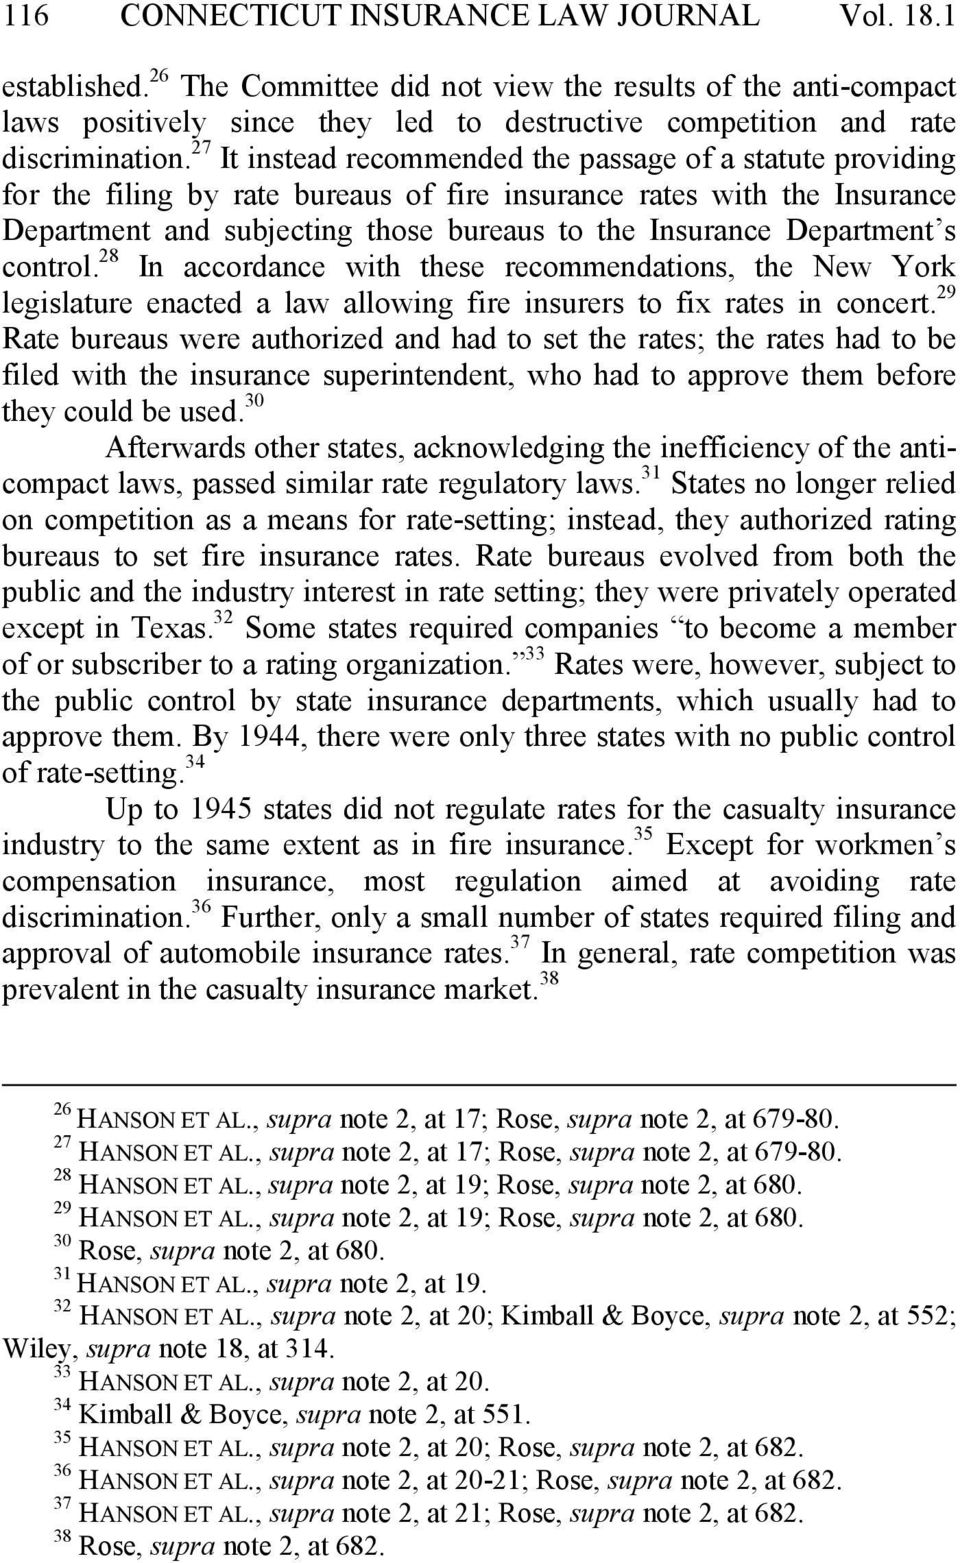 27 It instead recommended the passage of a statute providing for the filing by rate bureaus of fire insurance rates with the Insurance Department and subjecting those bureaus to the Insurance